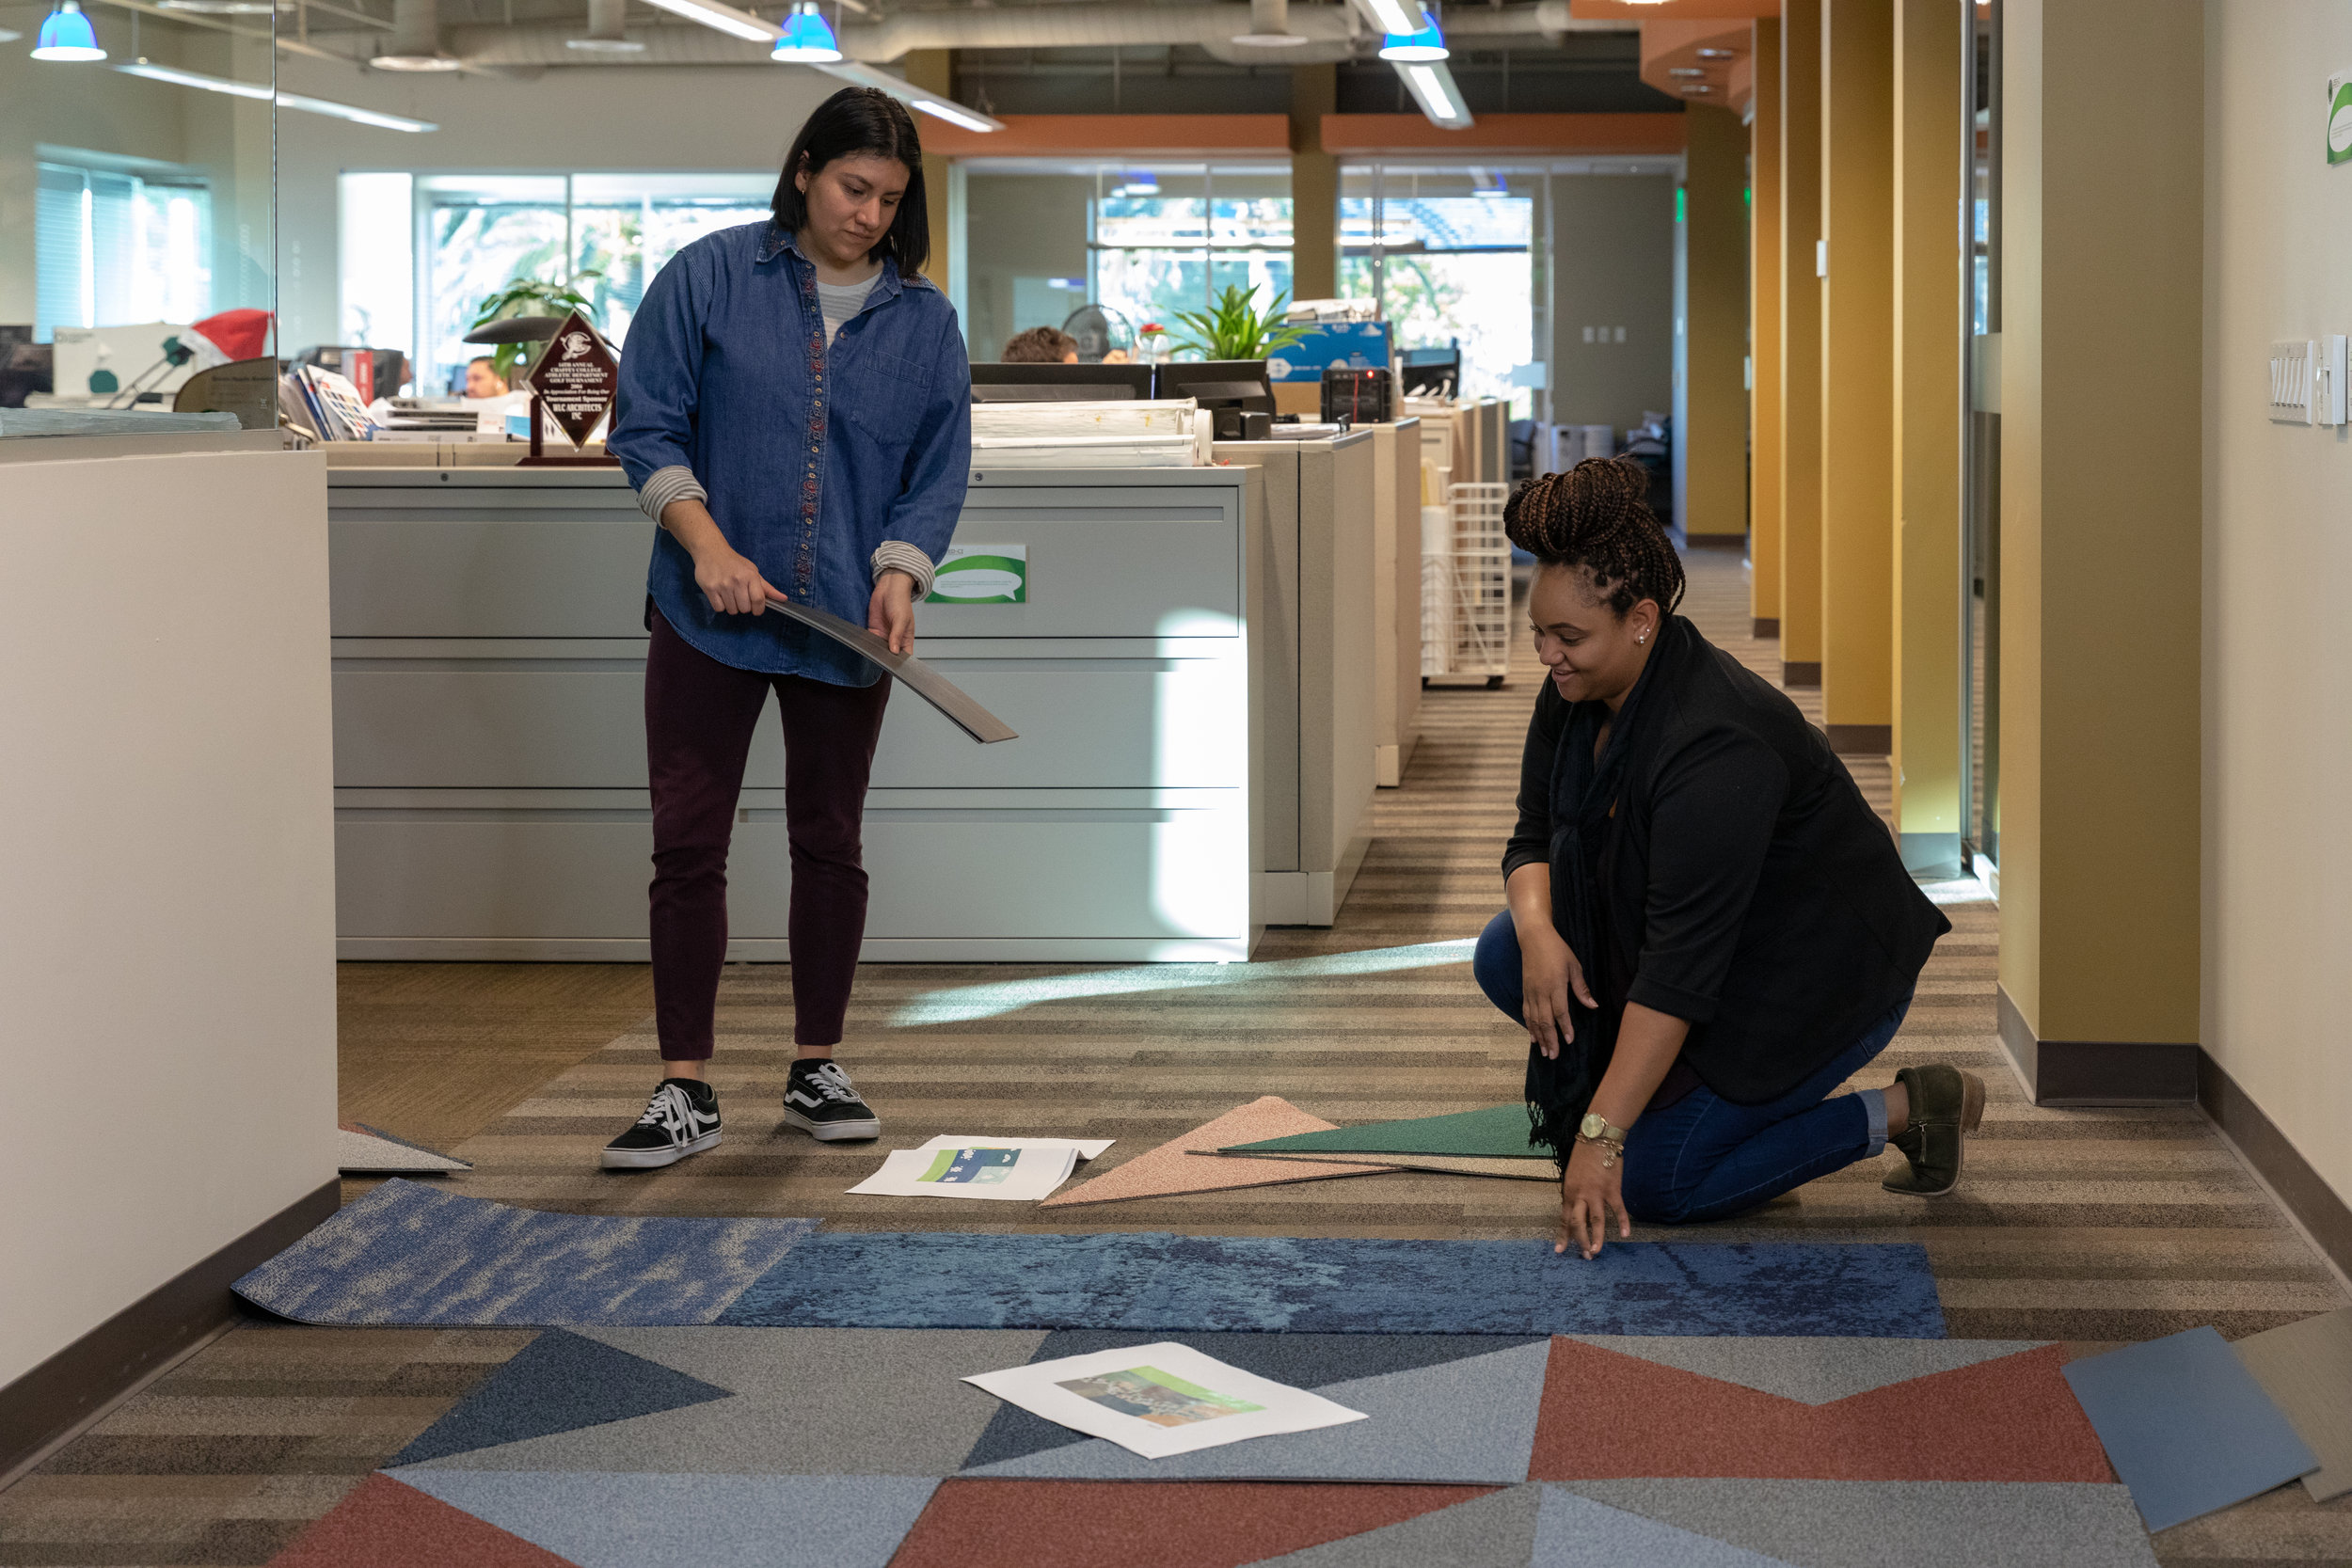 Designers Candace Luckett and Daniela Martinez lay out carpet samples during flooring design.